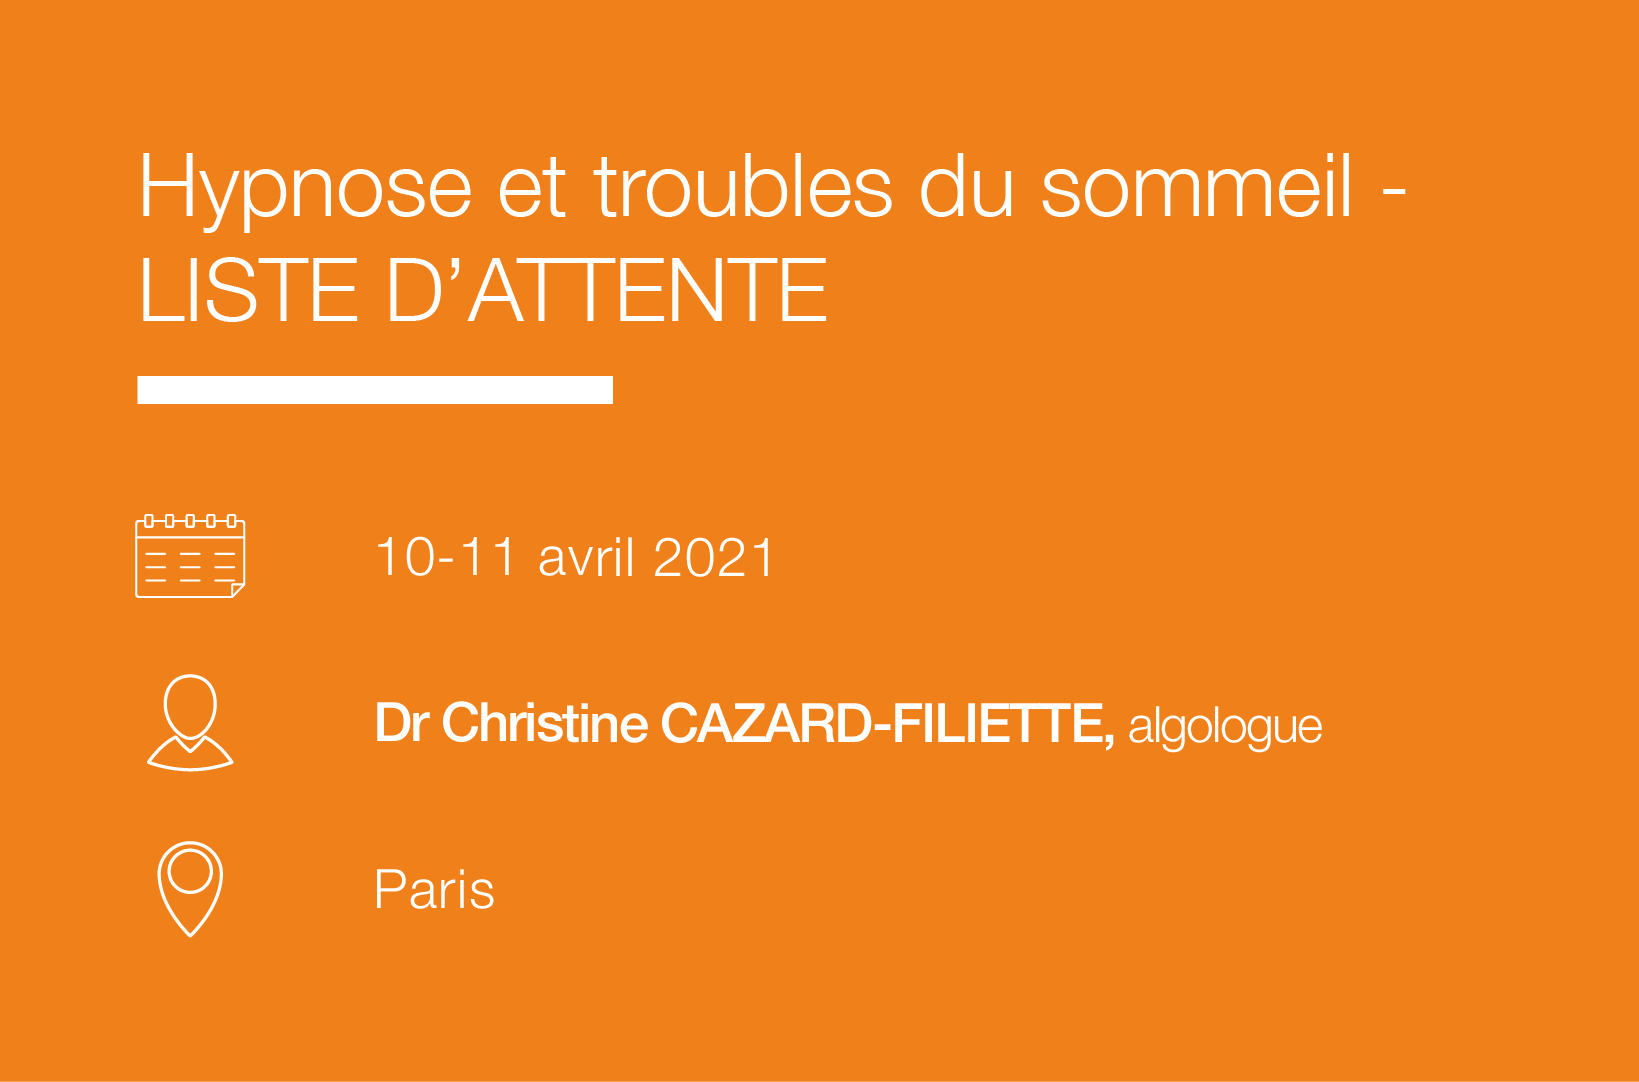 Formation Seminaire Troubles-sommeil-hypnose-IFH